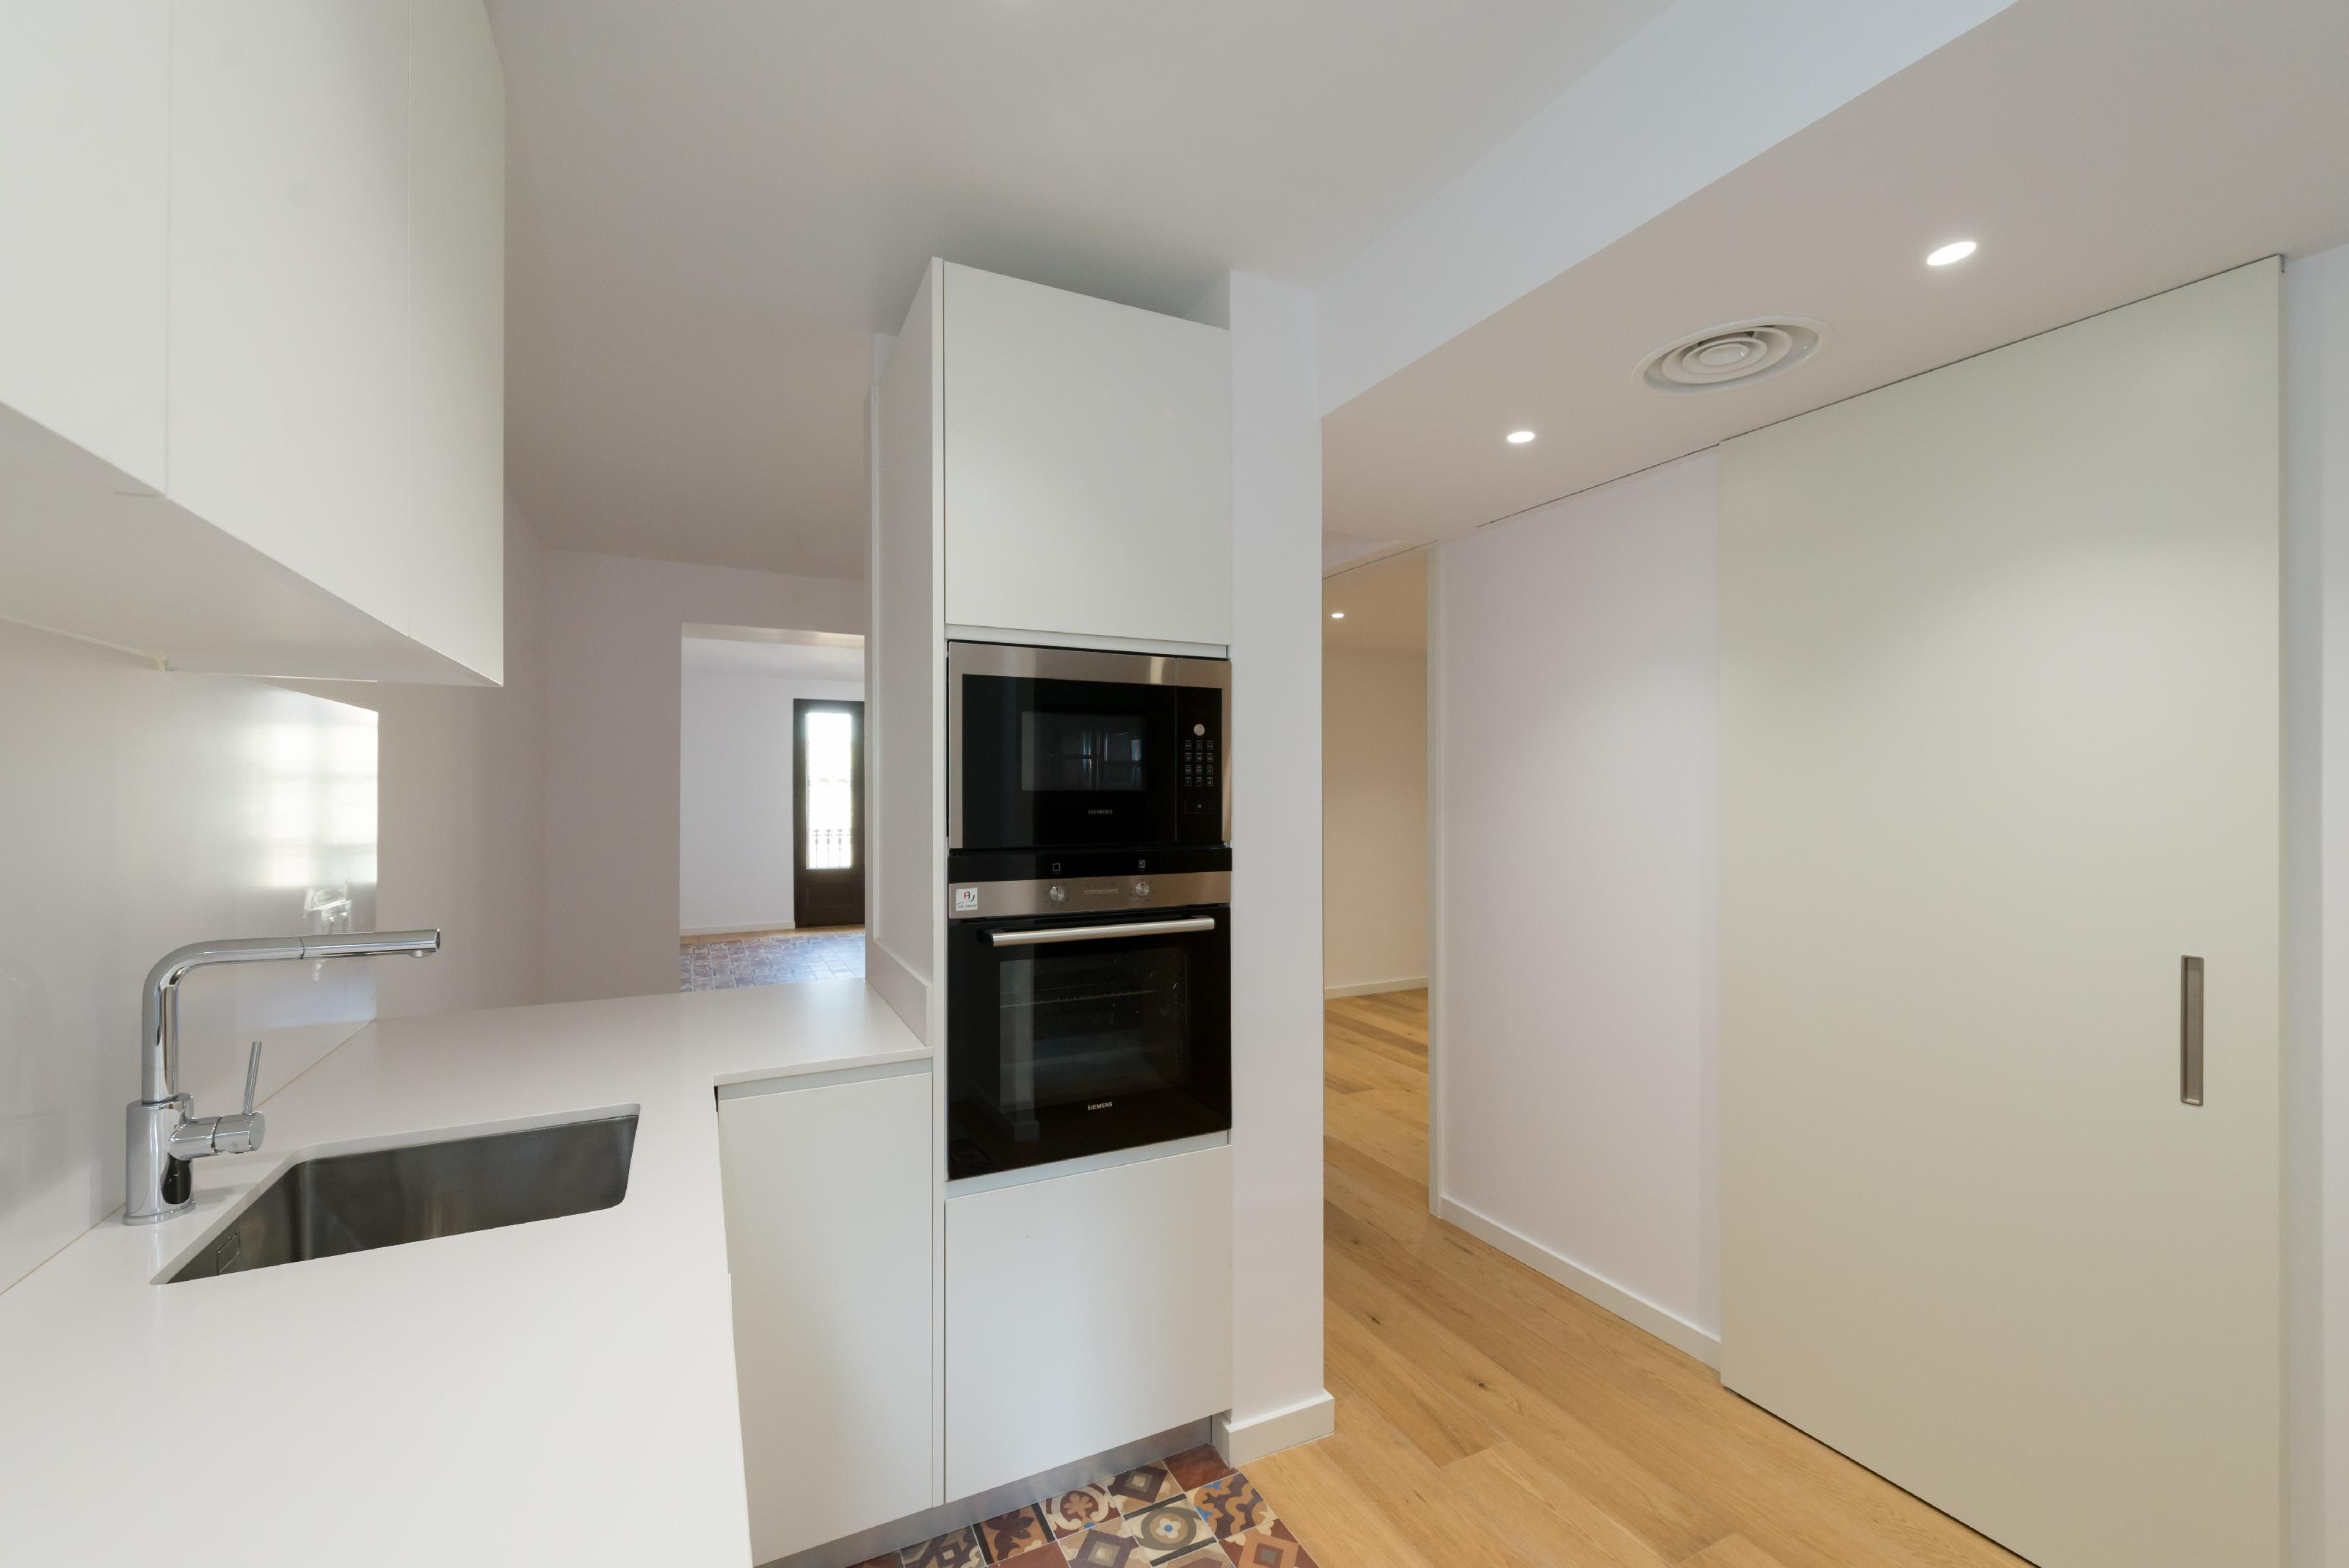 236358 Flat for sale in Eixample, Old Left Eixample 14